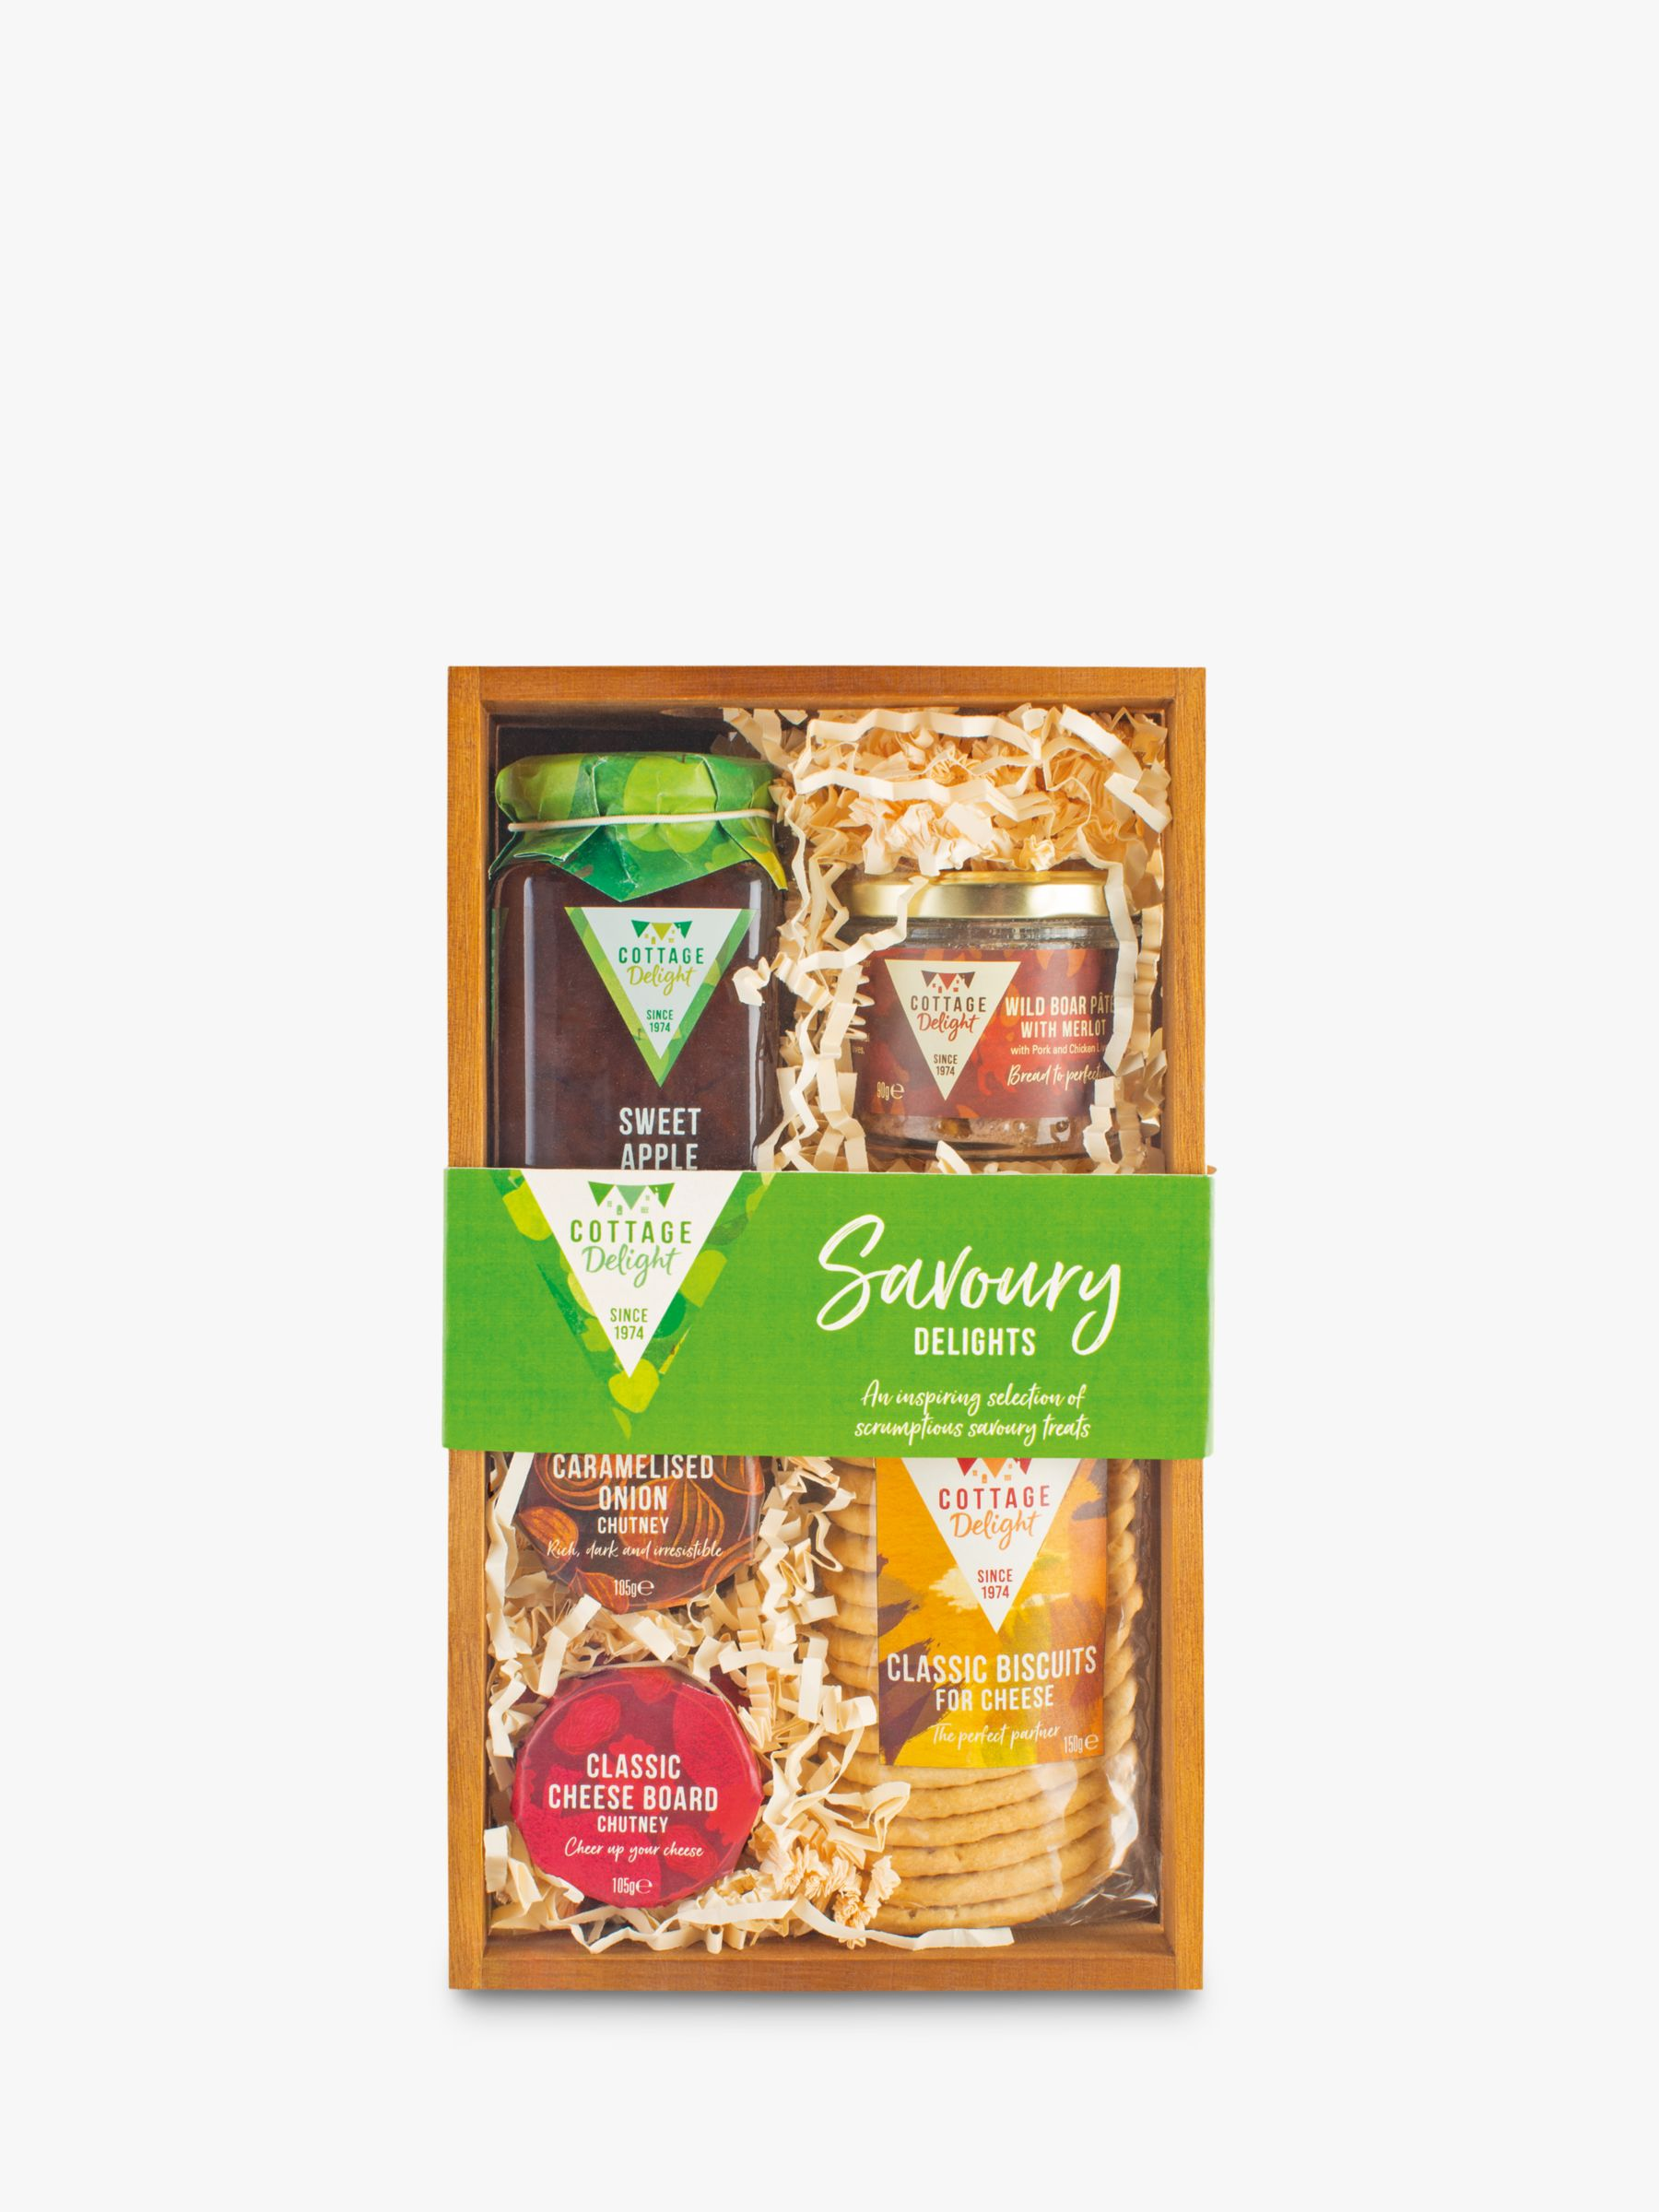 Cottage Delight Cottage Delight Savoury Delights Crate, 1.5kg